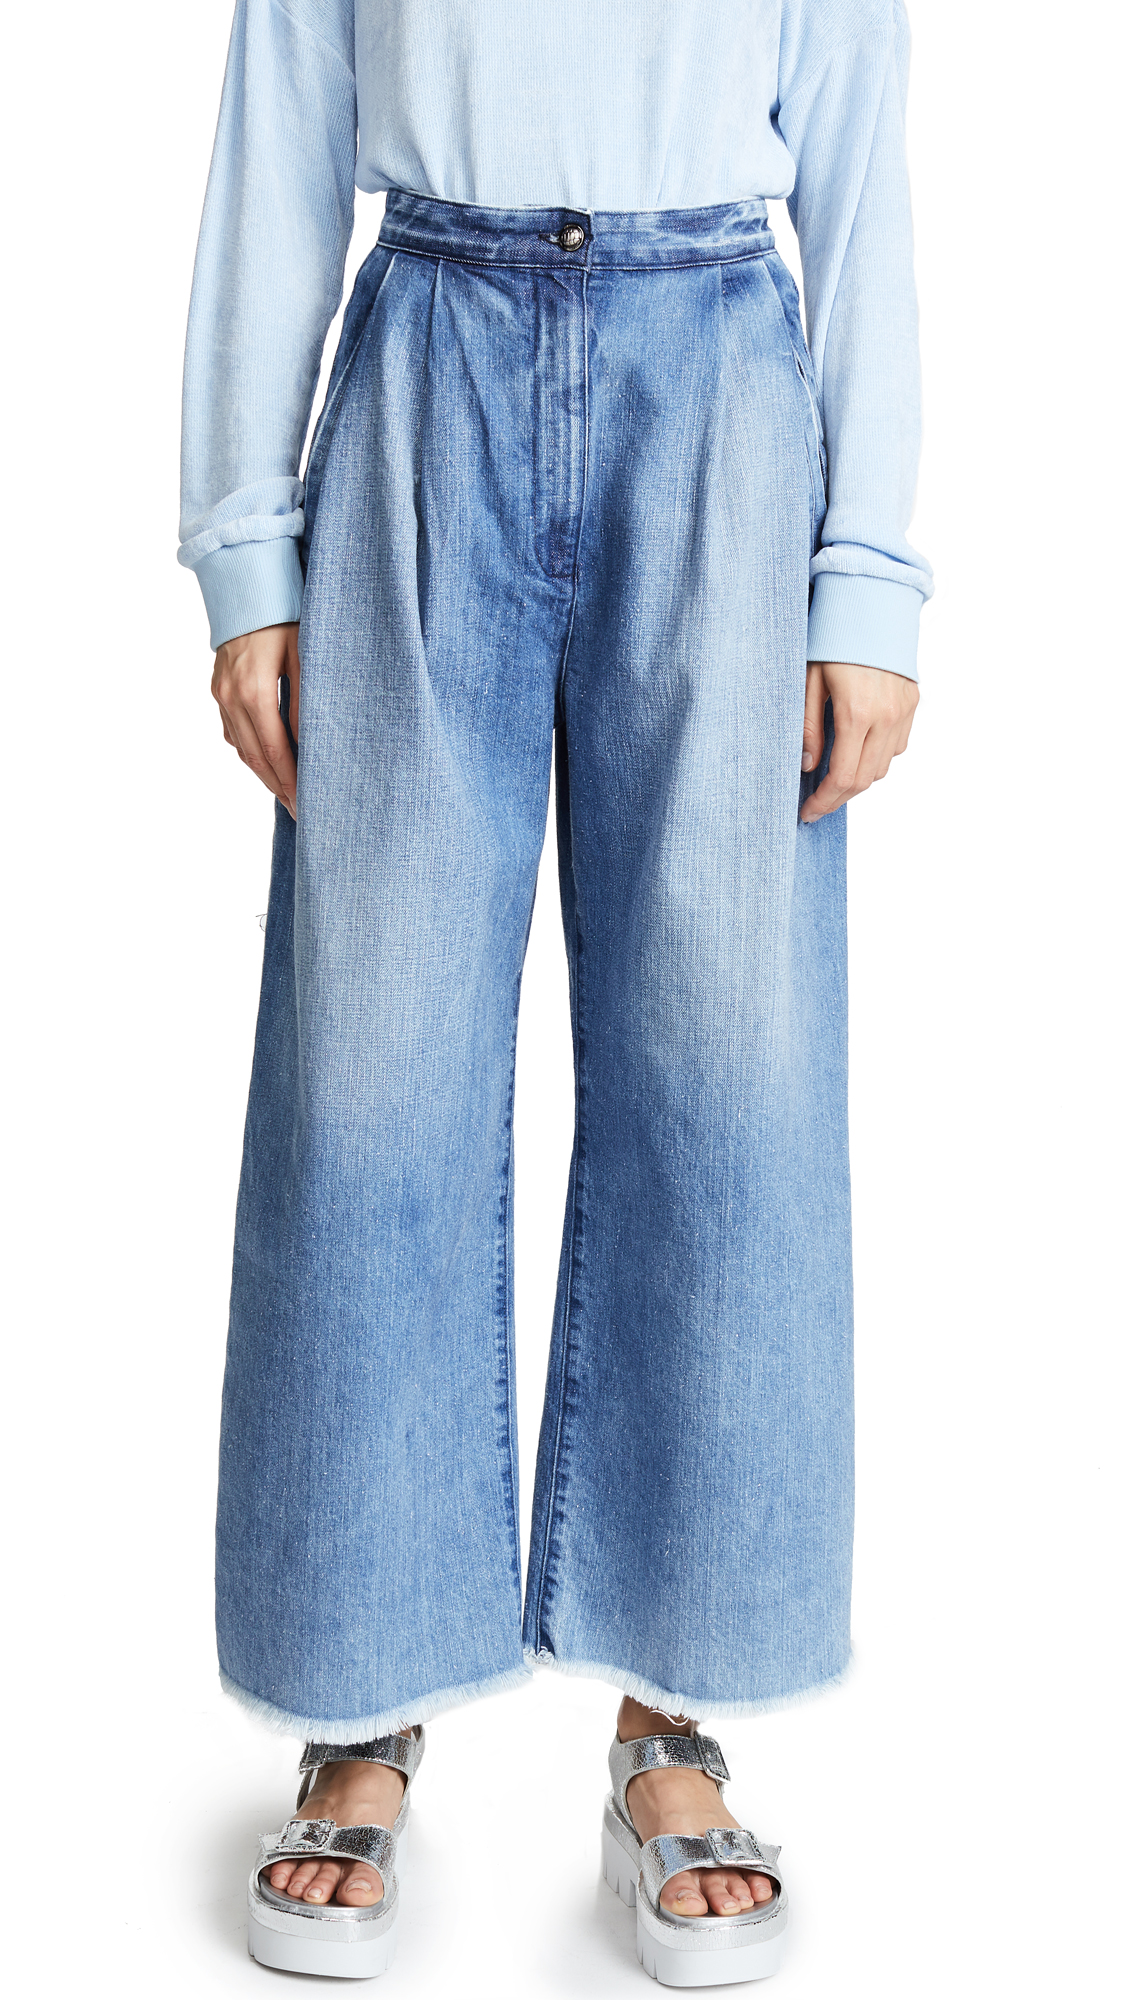 Tortoise Lucy High Waisted Baggy Trouser Jeans In Blue Medium